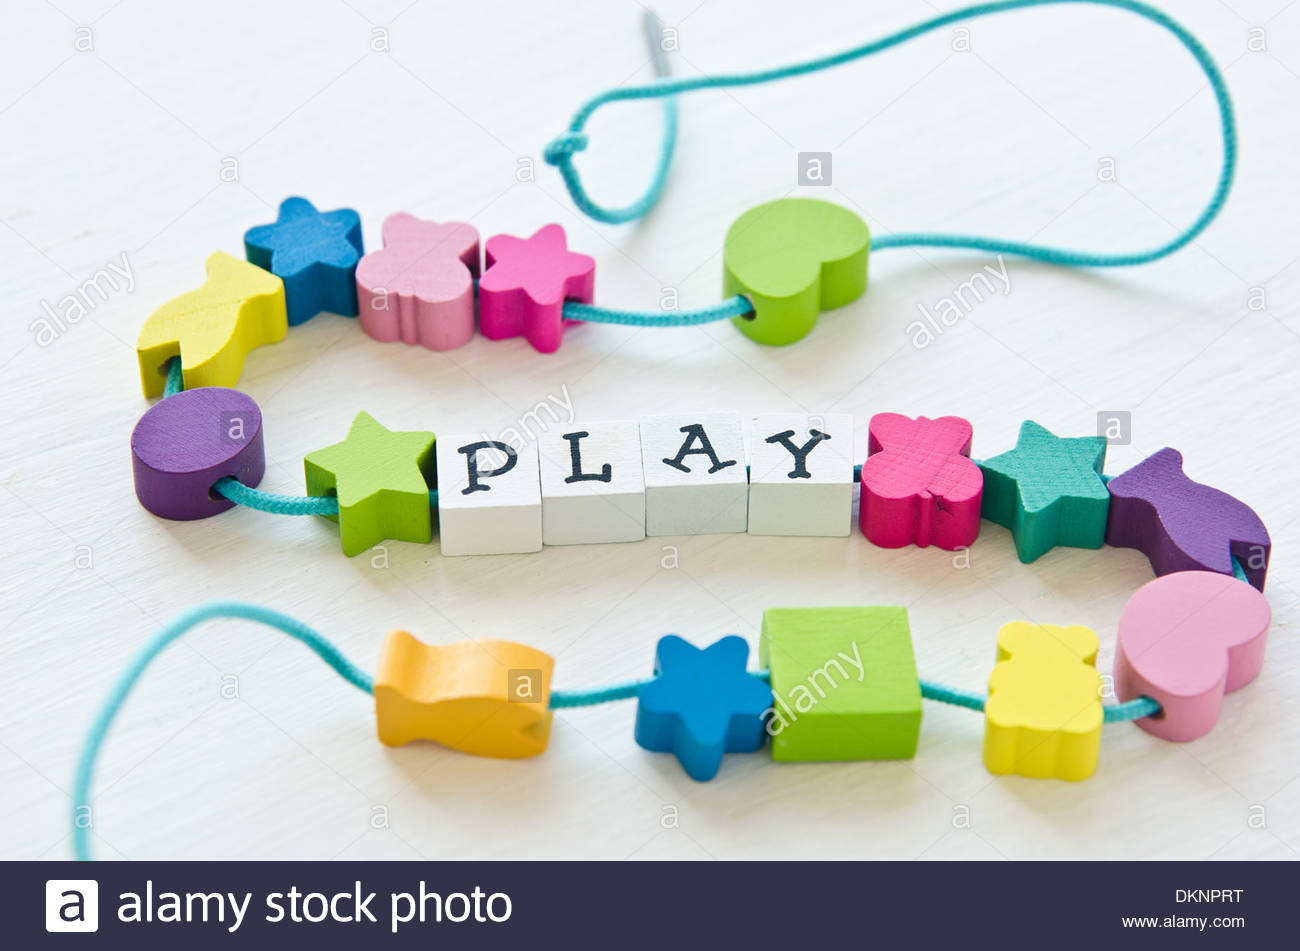 Toys beads strung together that spell 'play' on white background. - Stock Image